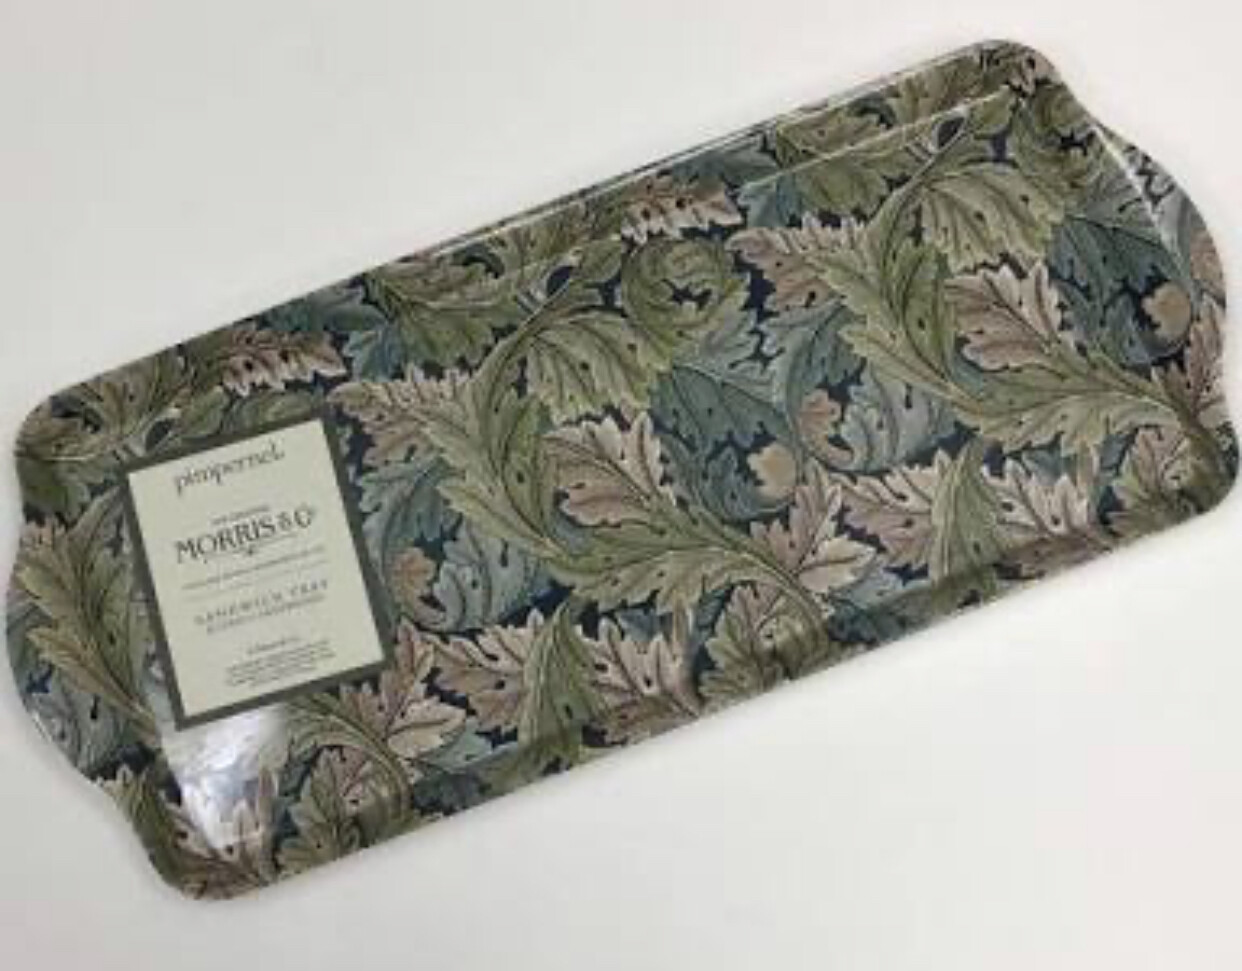 MORRIS&Co - by Pimpernel William Morris Sandwich Tray - Wight Wick